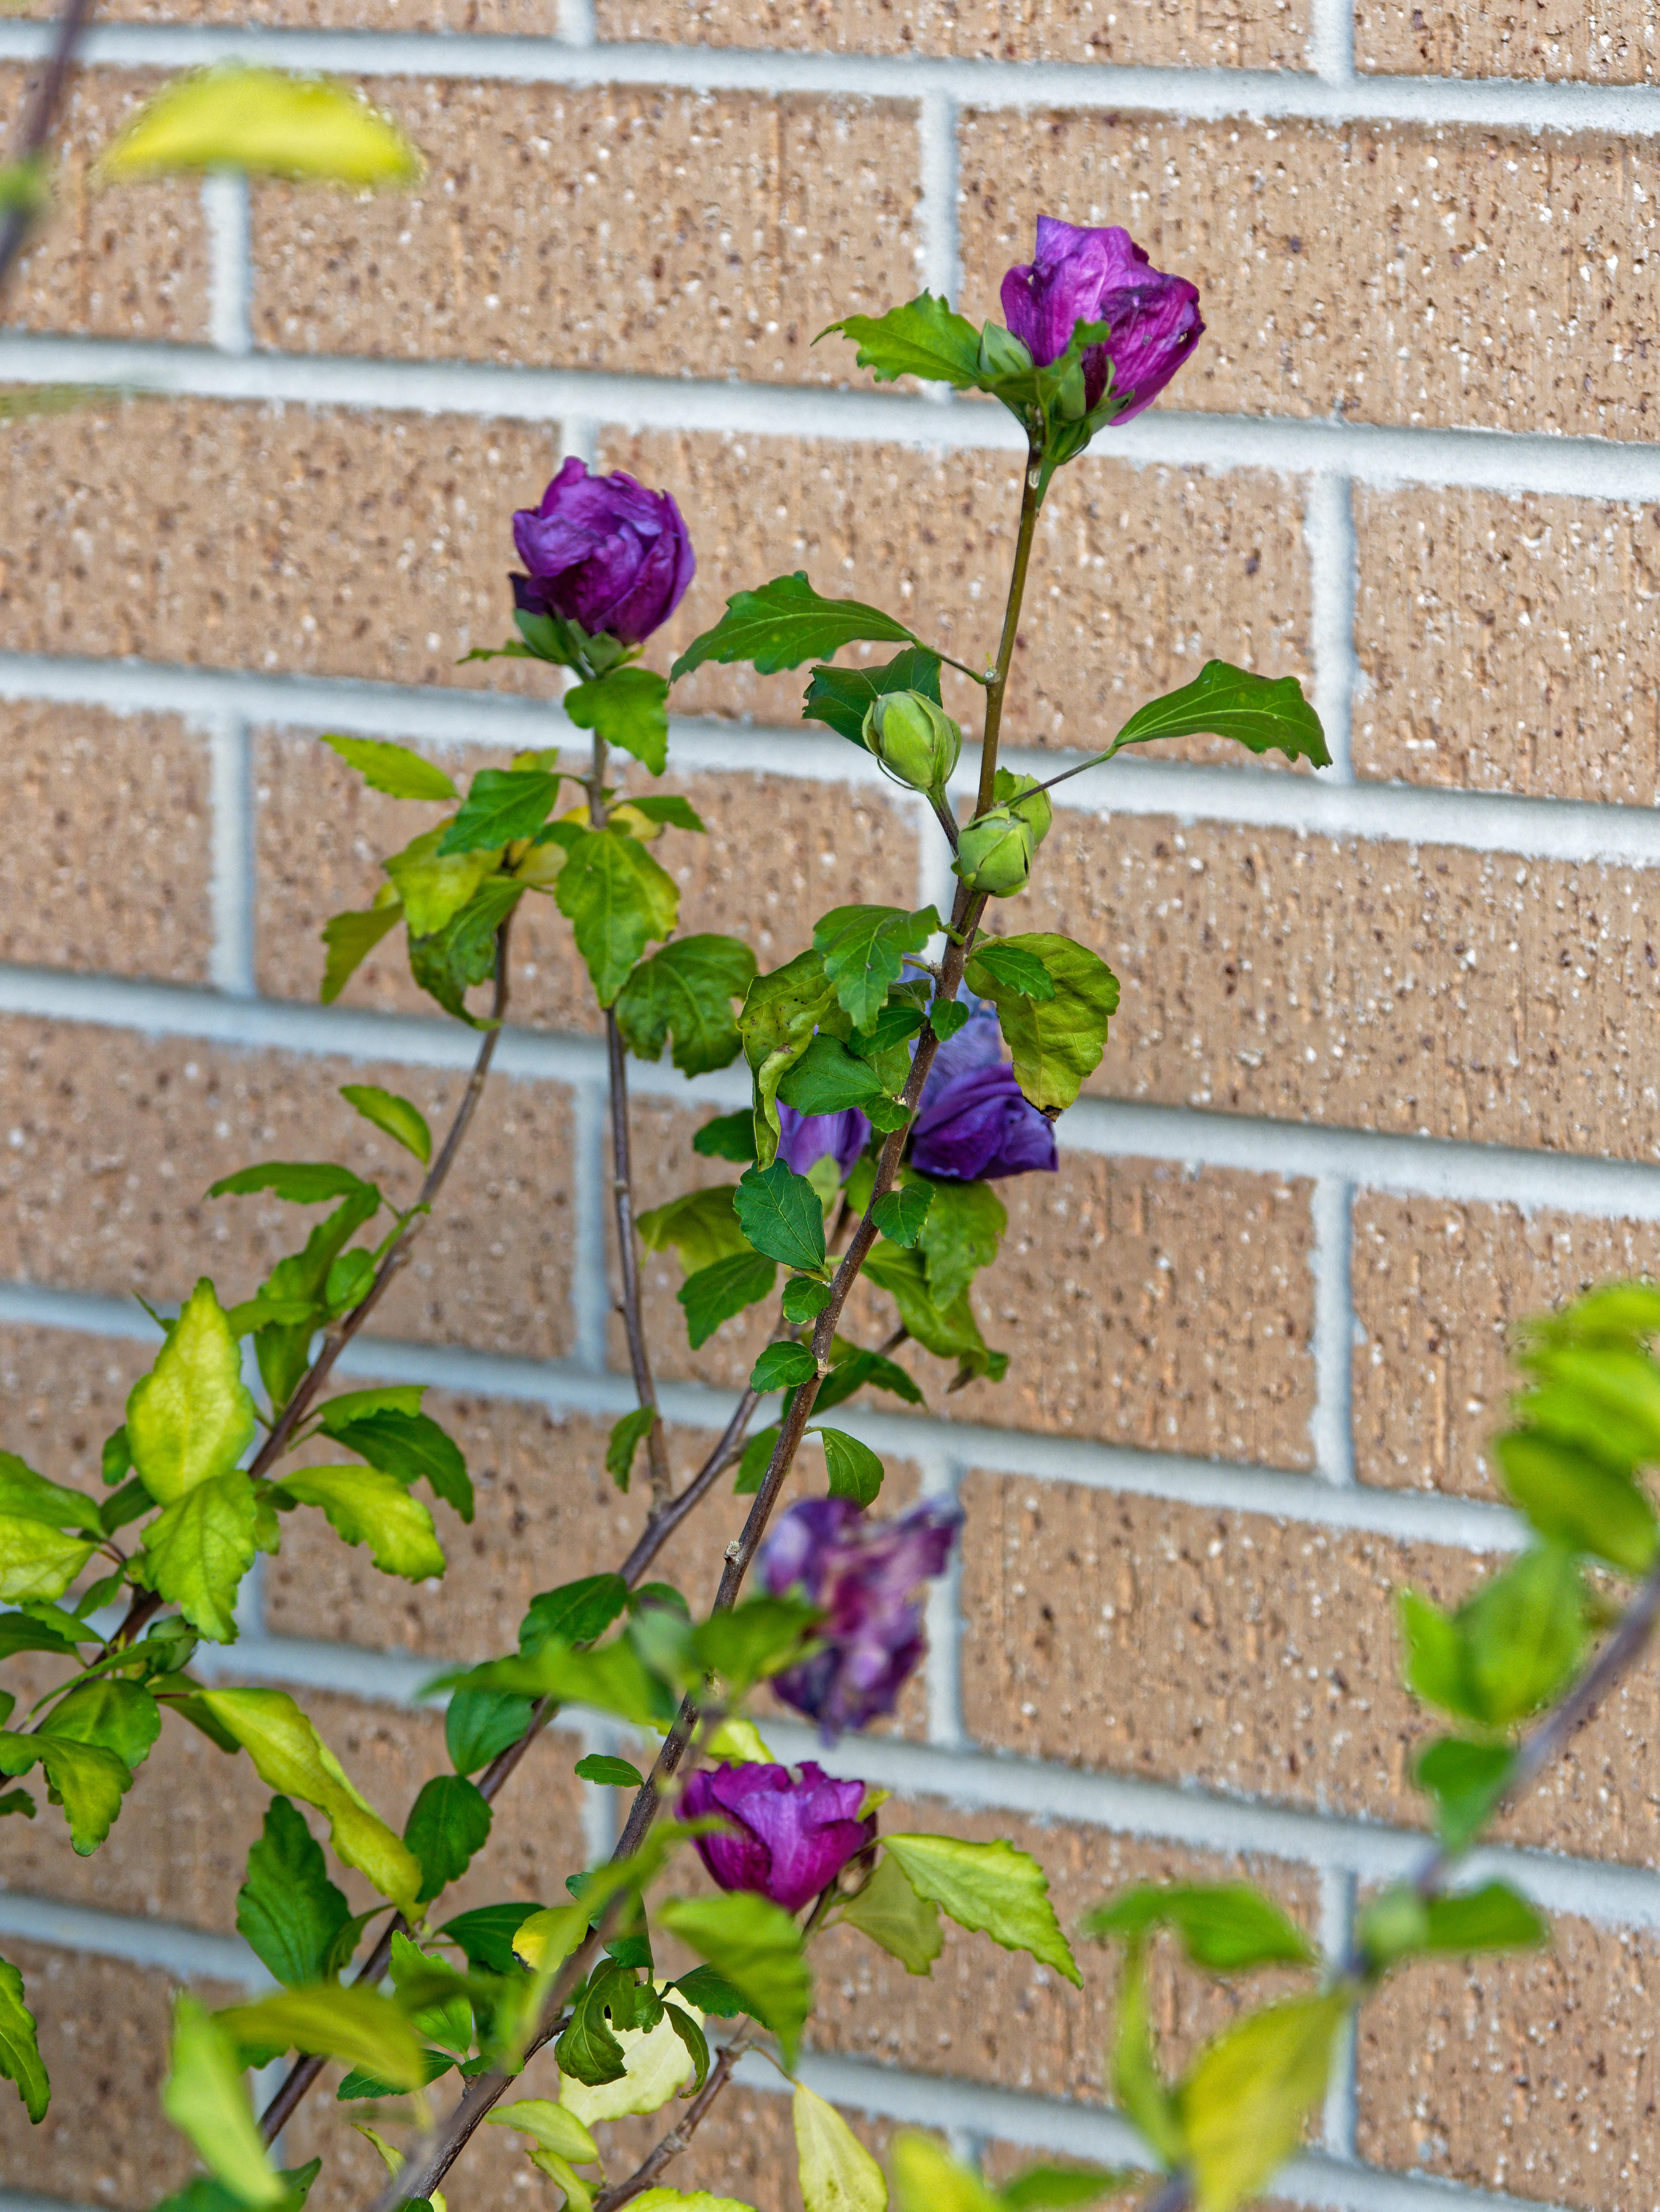 This should be Hibiscus-syriacus-1.jpeg.  Is it missing?